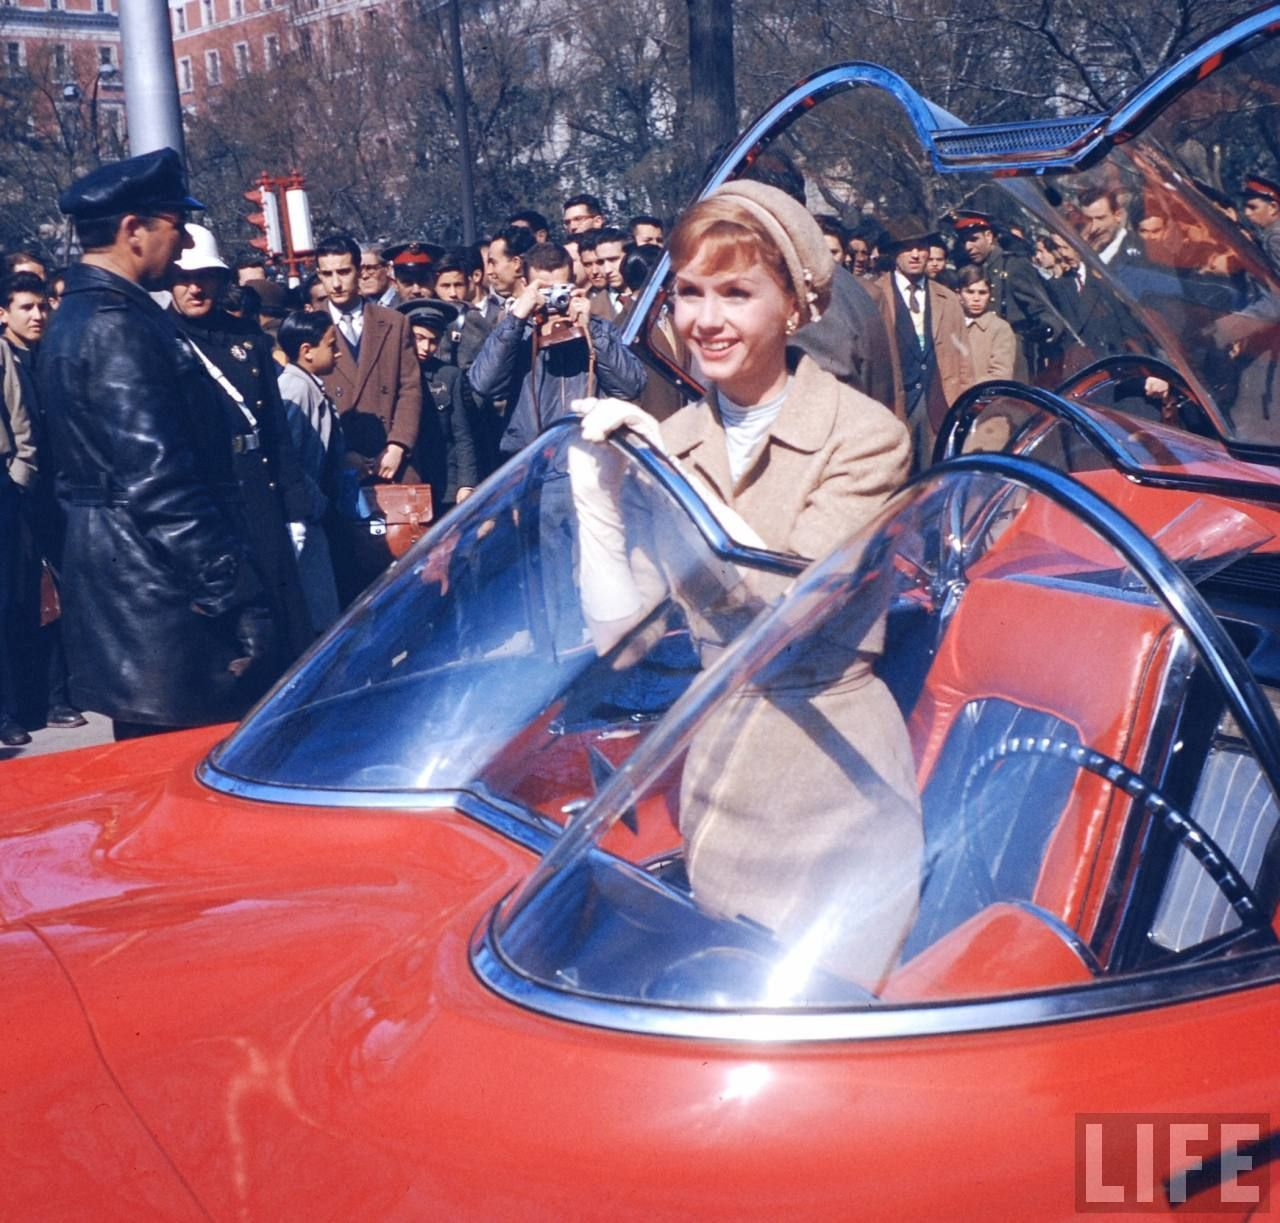 debbie reynolds and glenn ford in the lincoln futura from. Black Bedroom Furniture Sets. Home Design Ideas